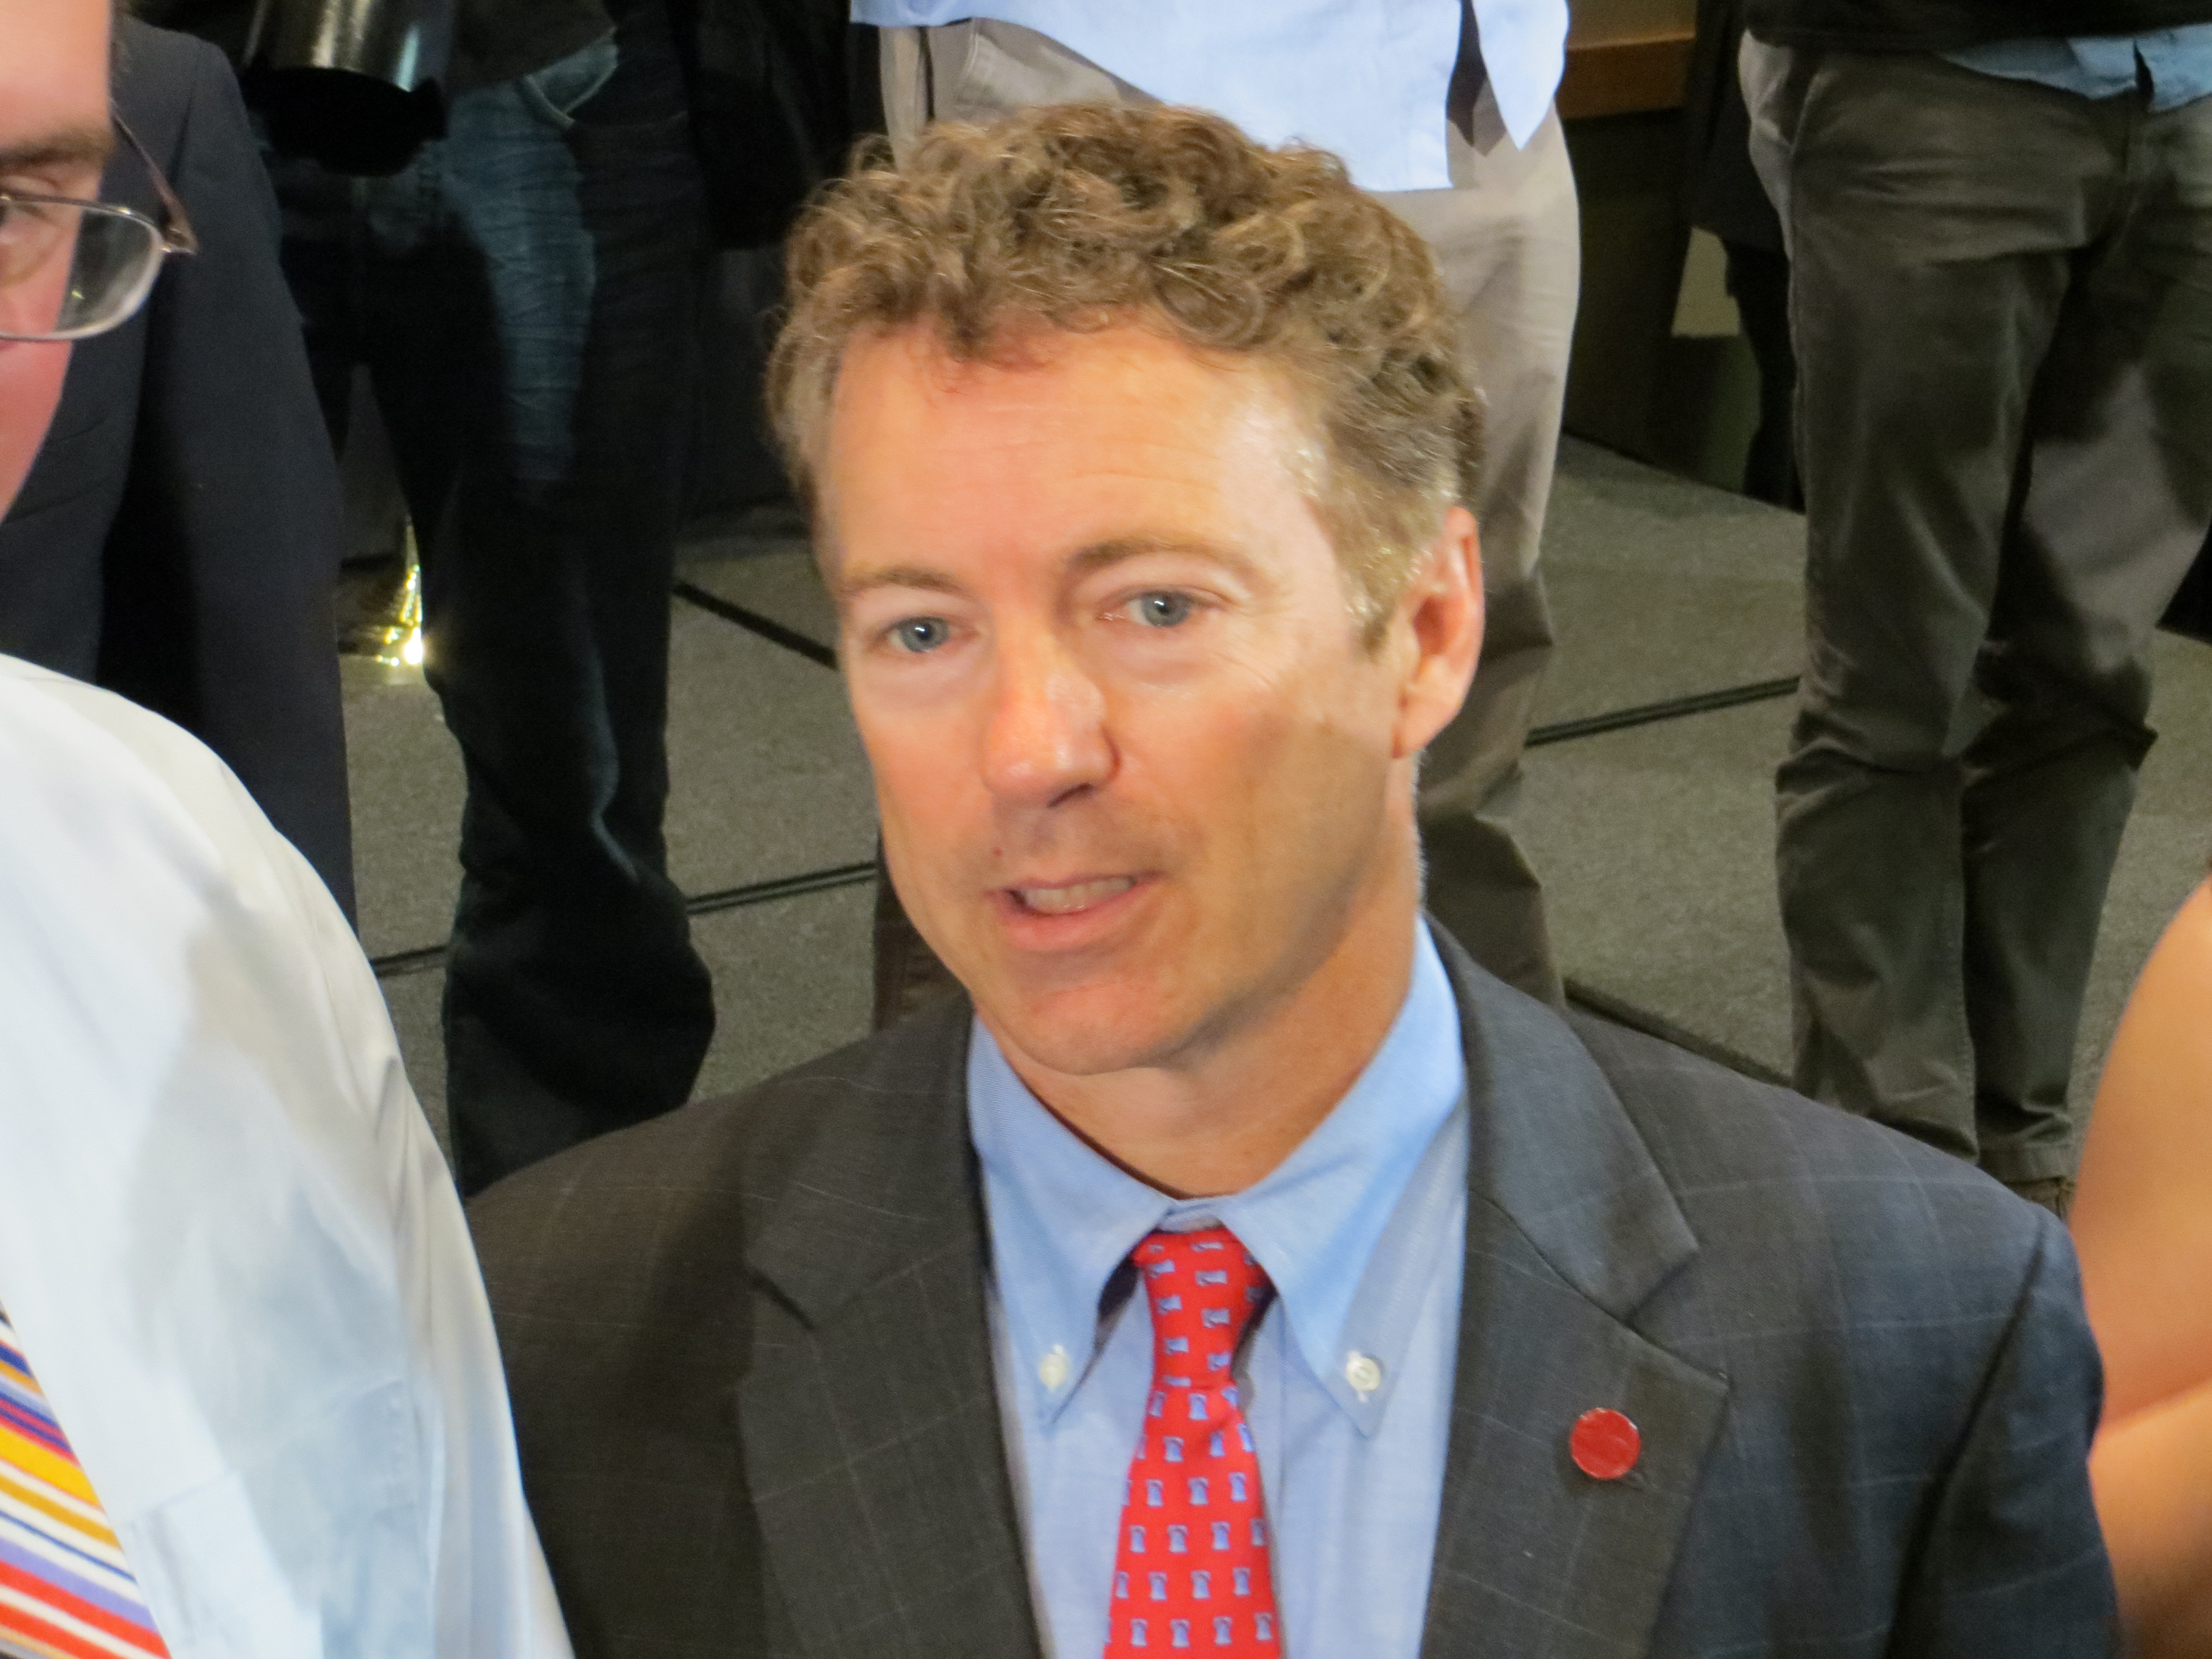 paul could be asset or liability for rand paul iowa paul could be asset or liability for rand paul iowa public radio